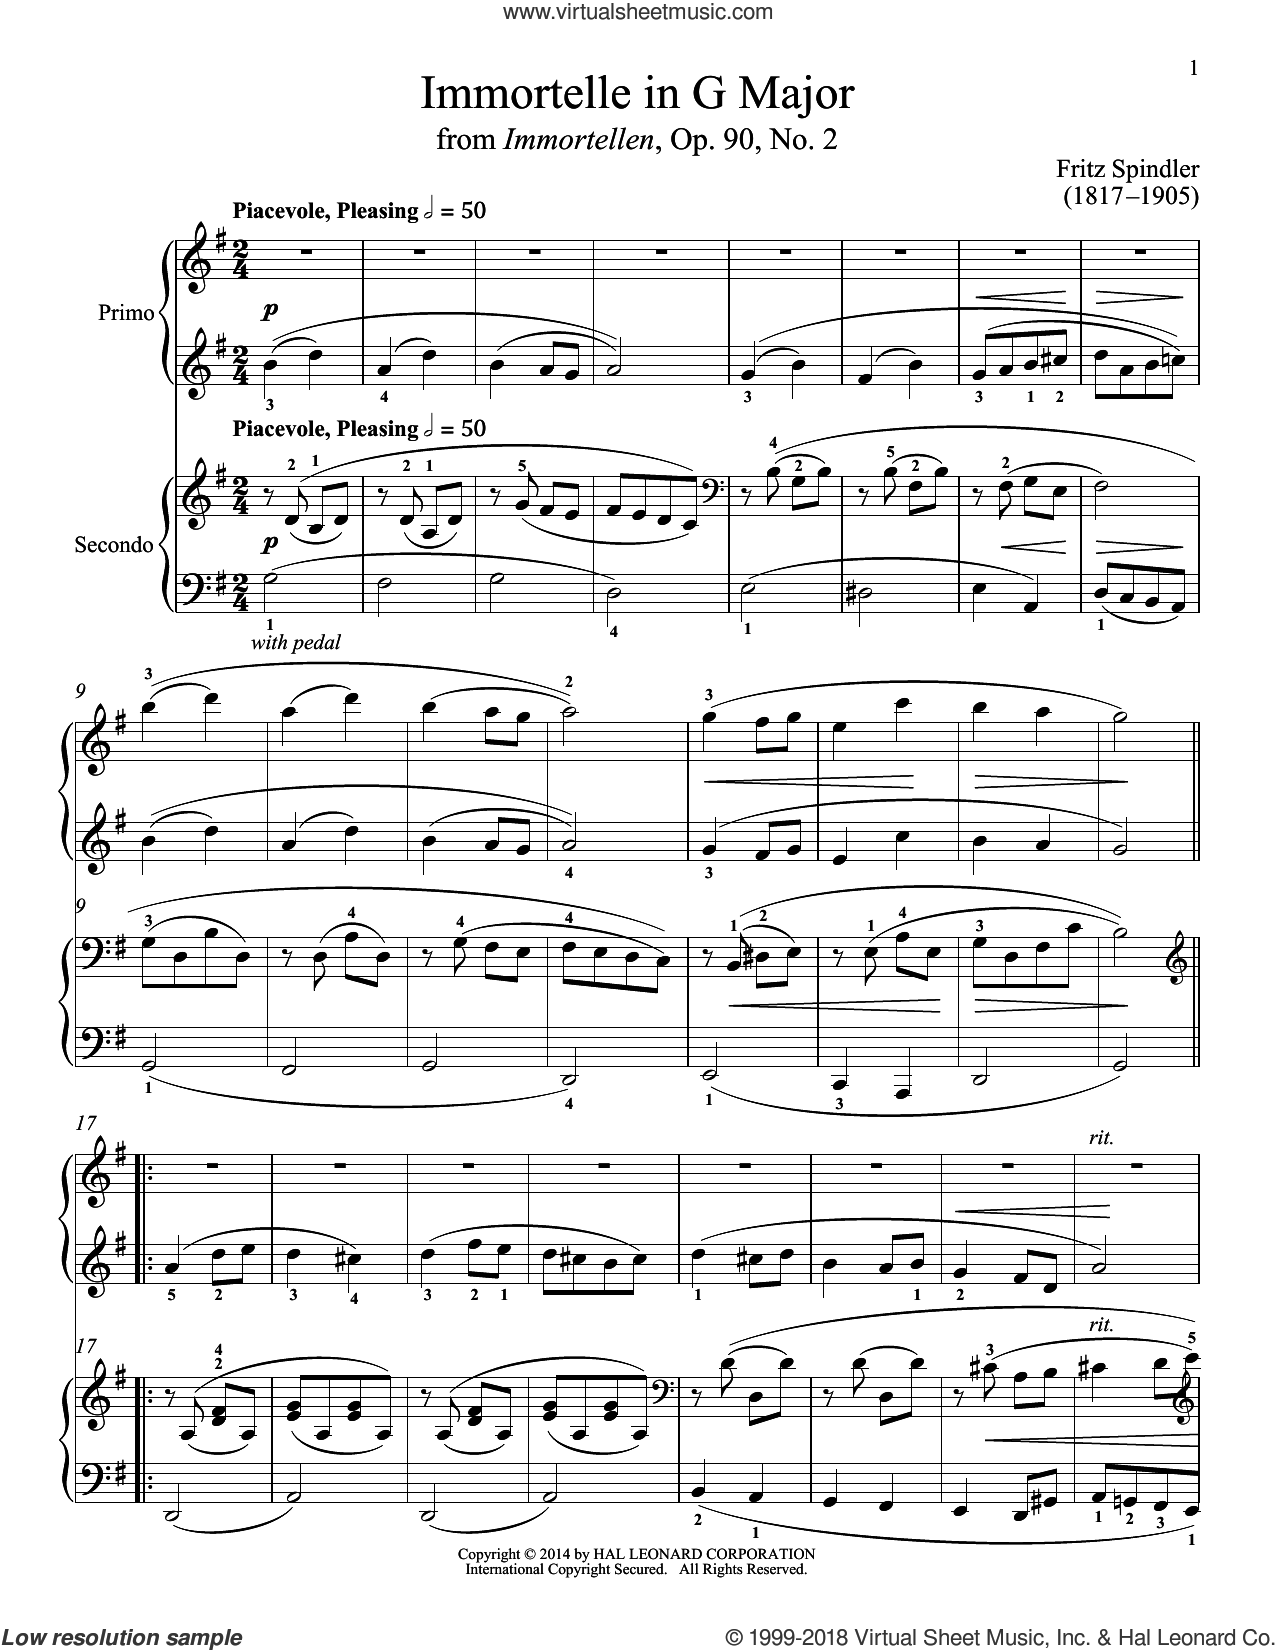 Immortelle In G Major sheet music for piano four hands by Bradley Beckman and Carolyn True, classical score, intermediate skill level